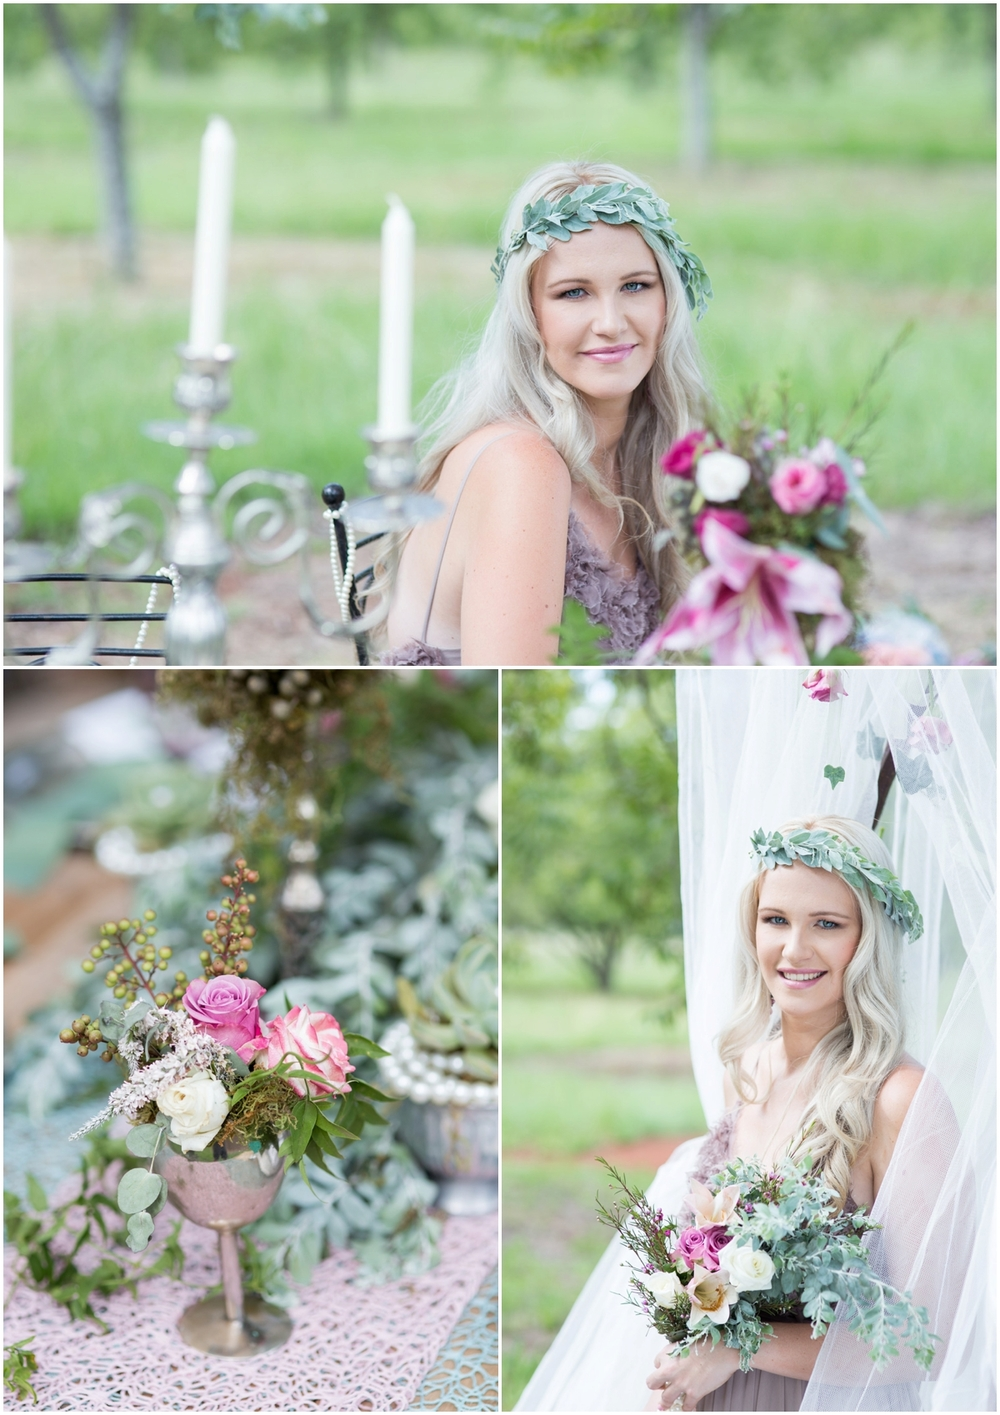 Shokran pretoria wedding venue shoot077.jpg